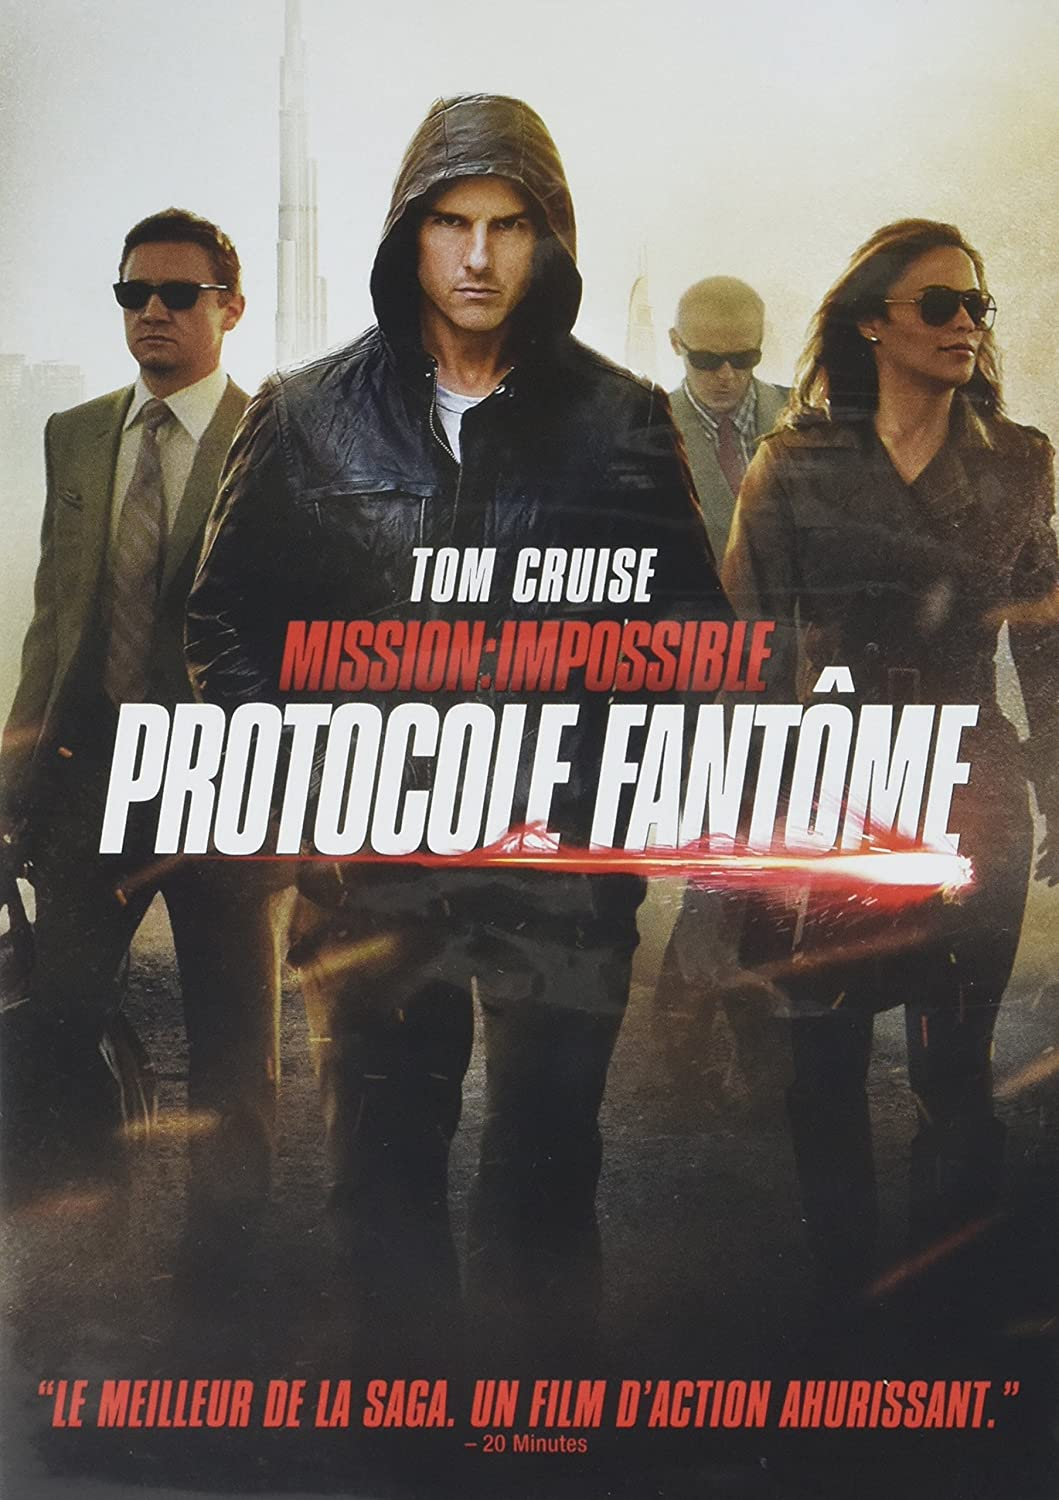 TRUEFRENCH TÉLÉCHARGER PROTOCOLE DVDRIP IMPOSSIBLE FANTOME MISSION